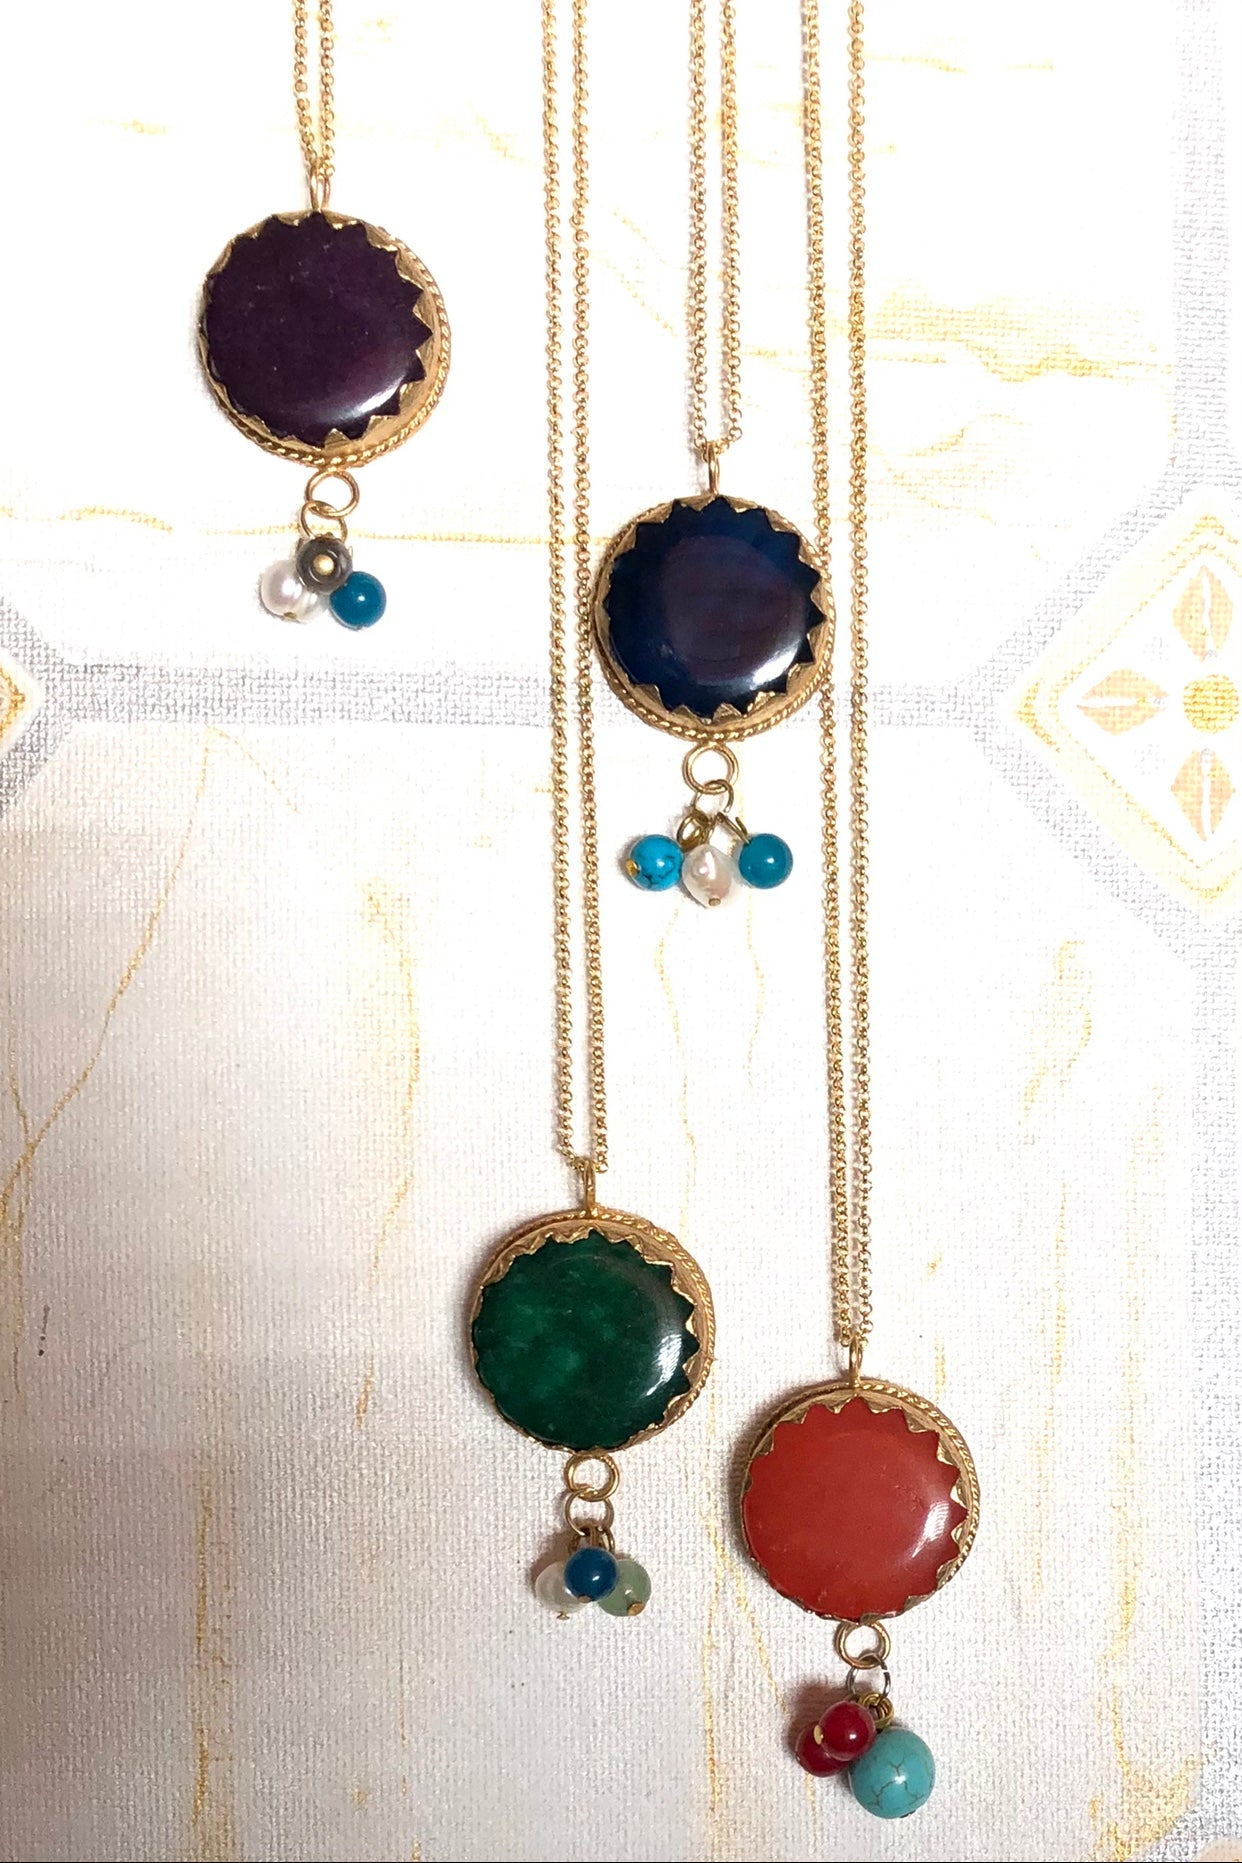 These cheerful pendants are made for wearing this summer! A bright pop of colour held by an antiqued gold tone bezel.